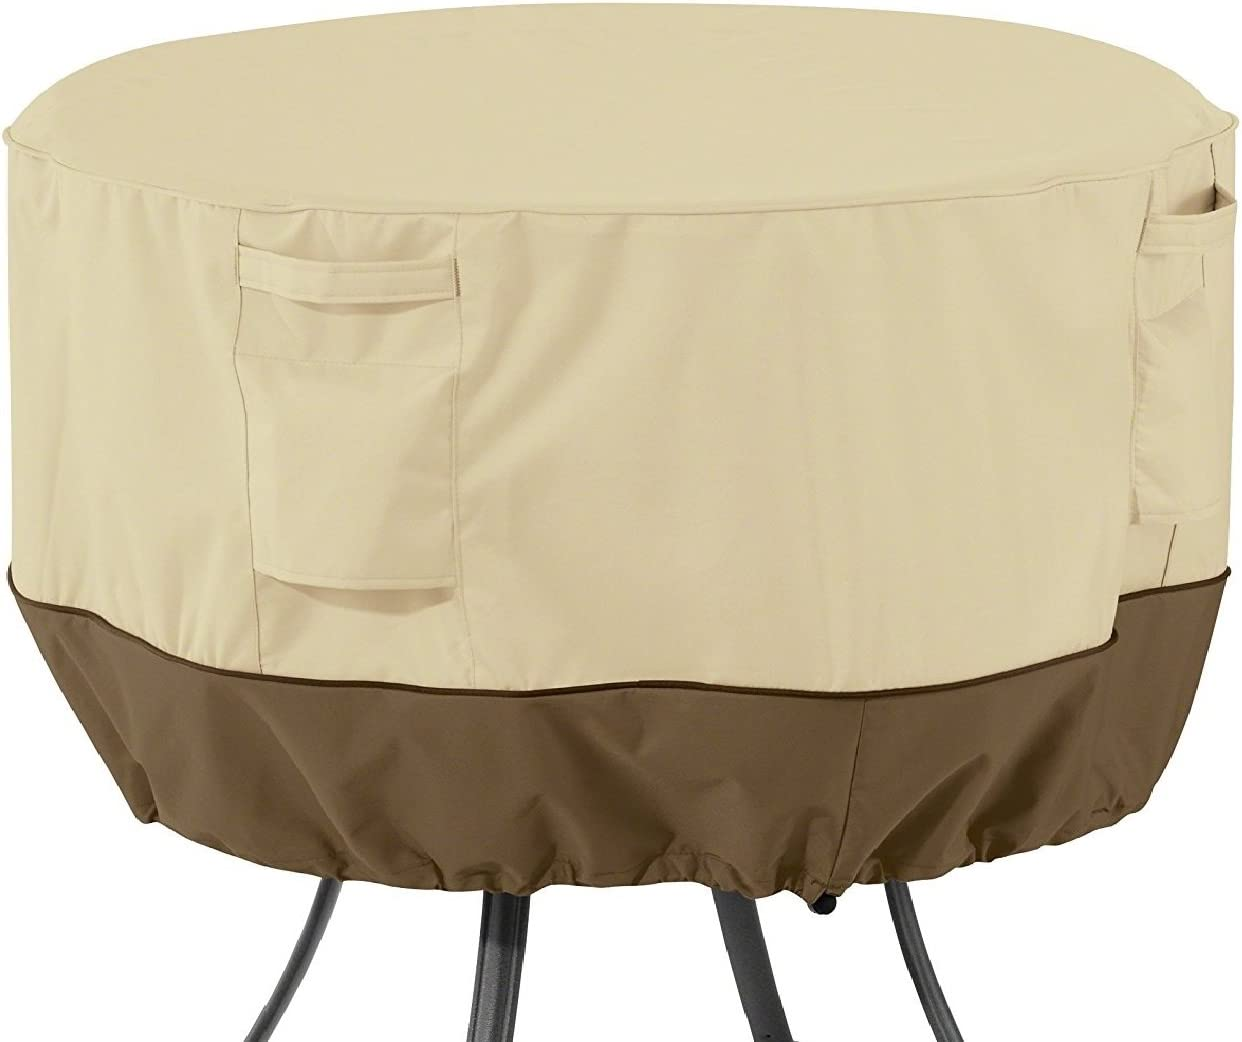 Classic Accessories Veranda Round Patio Table Cover, Medium